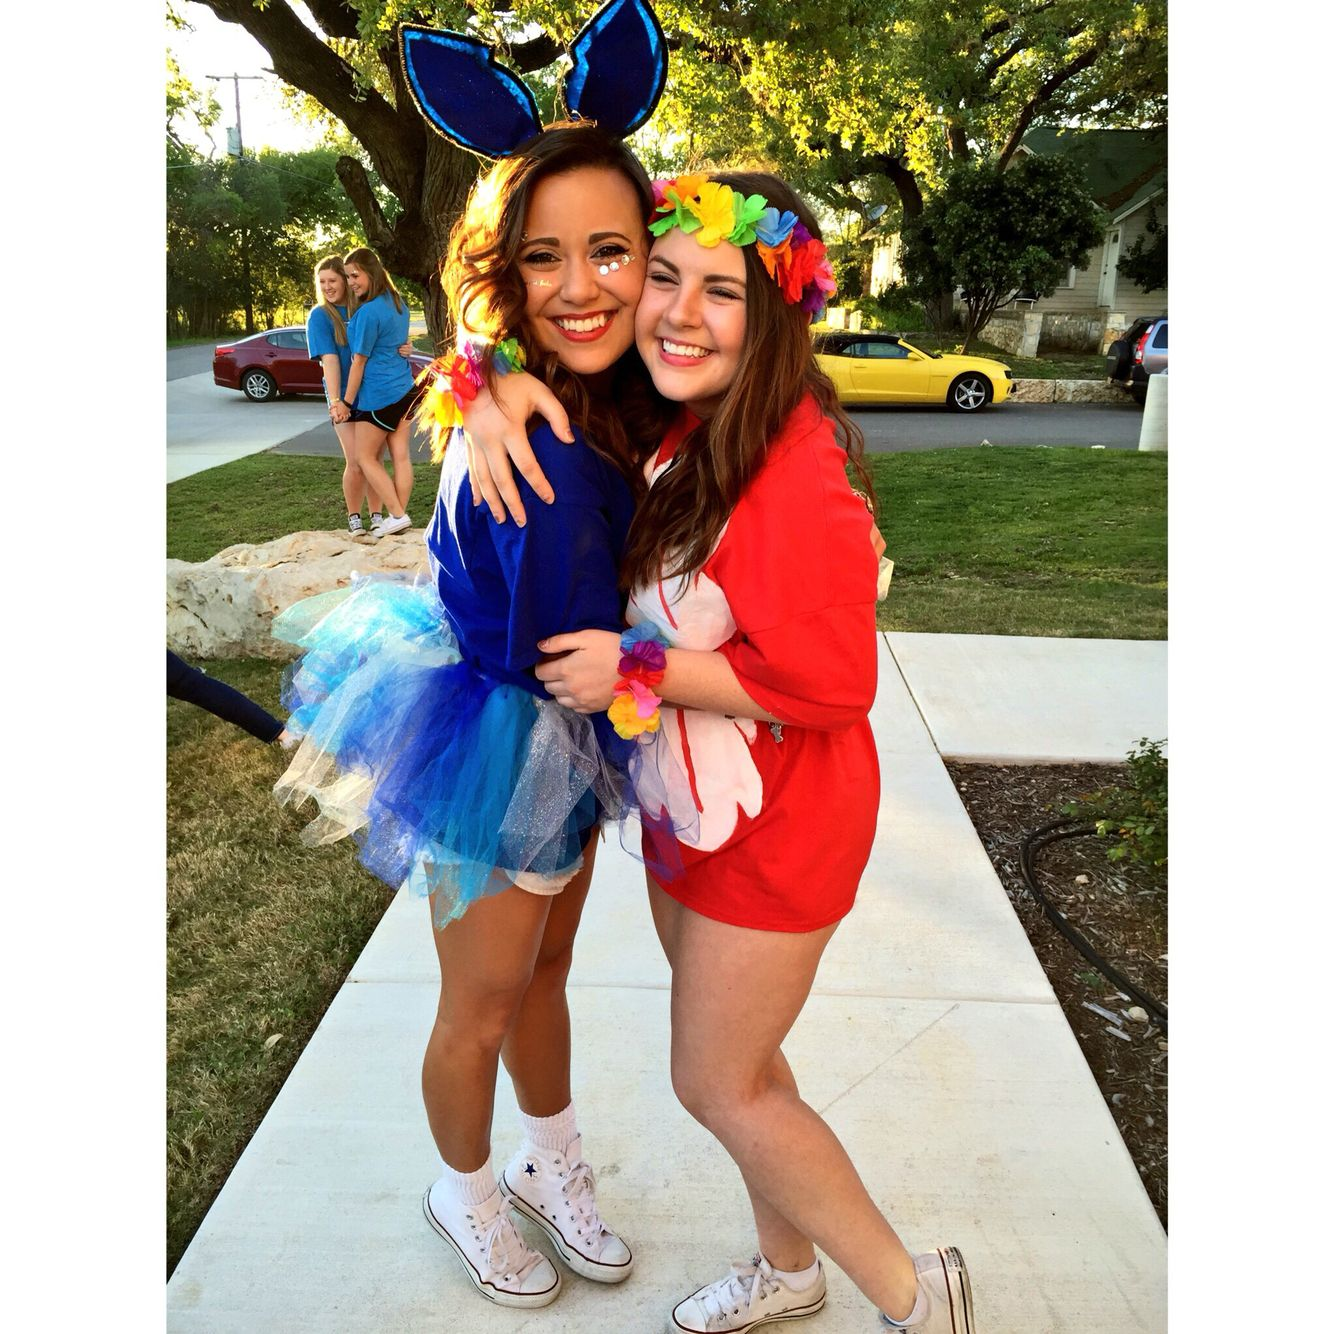 Lilo & Stitch Big Littl Reveal ΓΦΒ #biglittlereveal